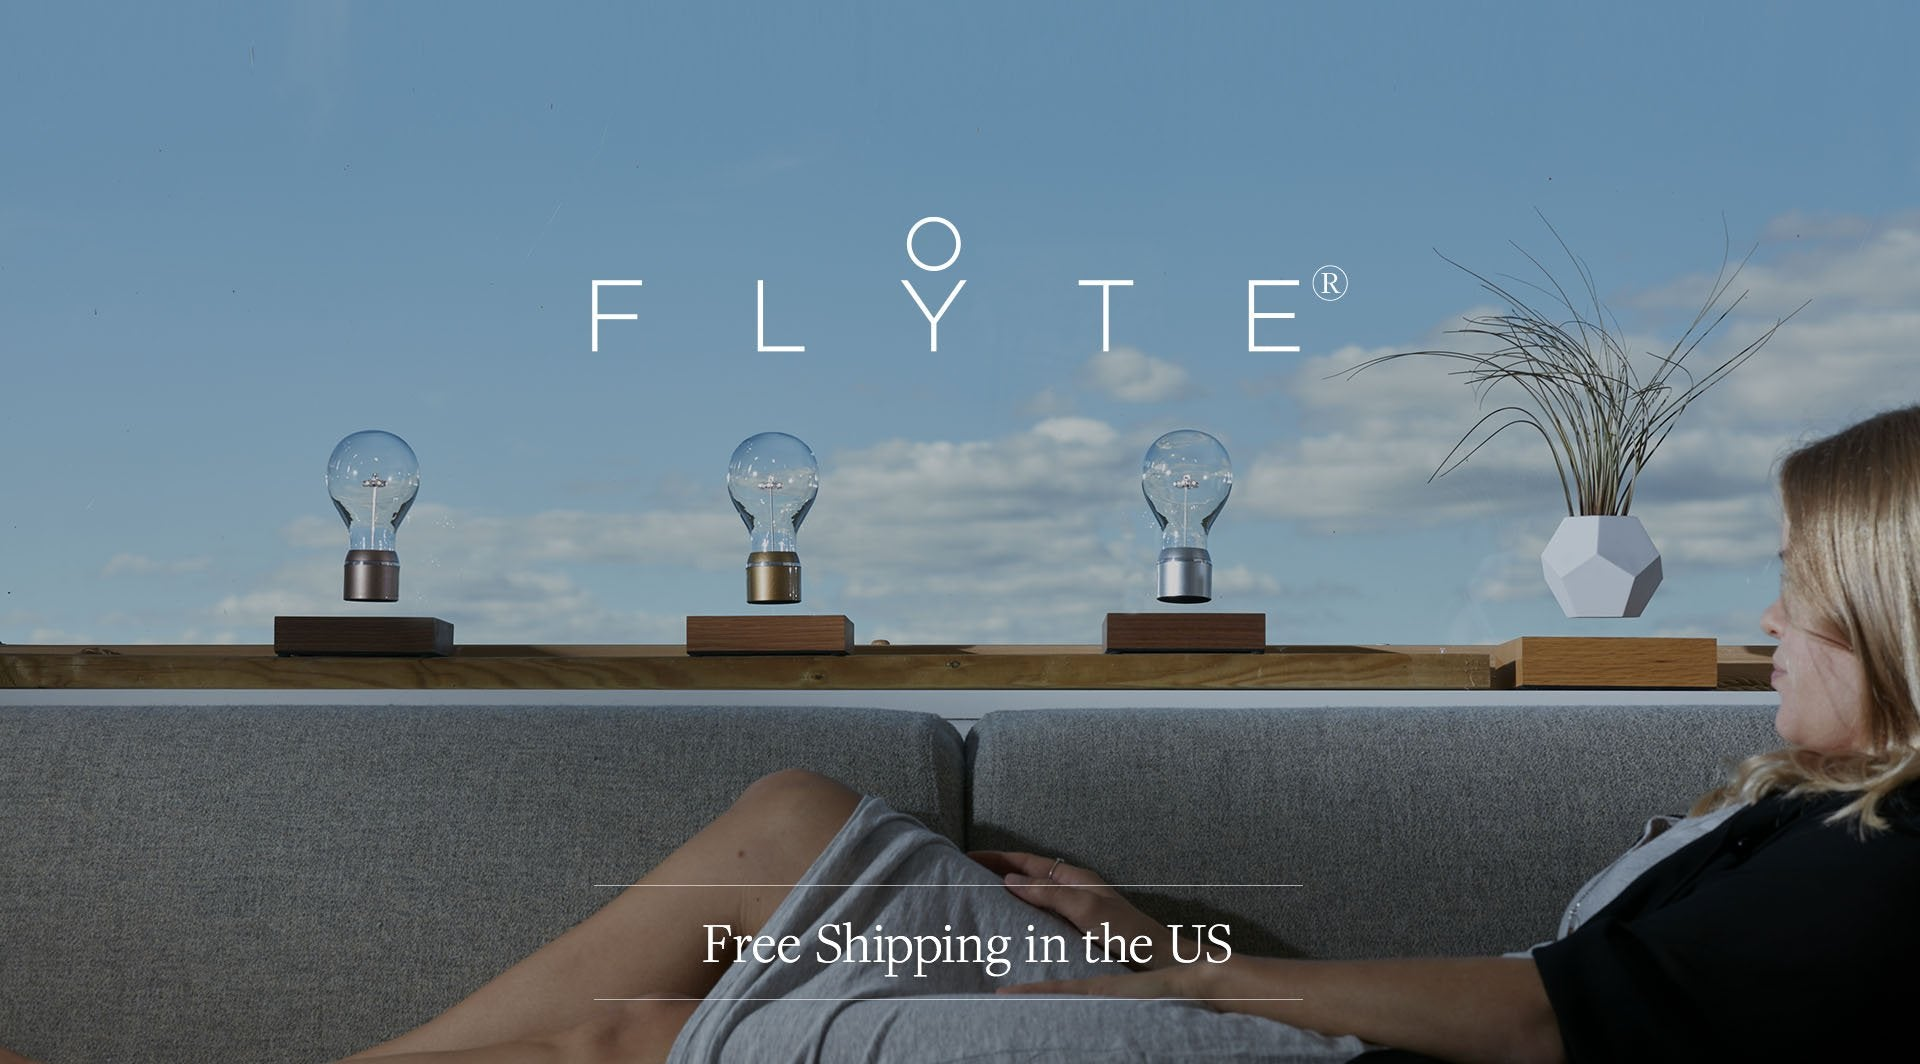 Flyte -free shipping in the US